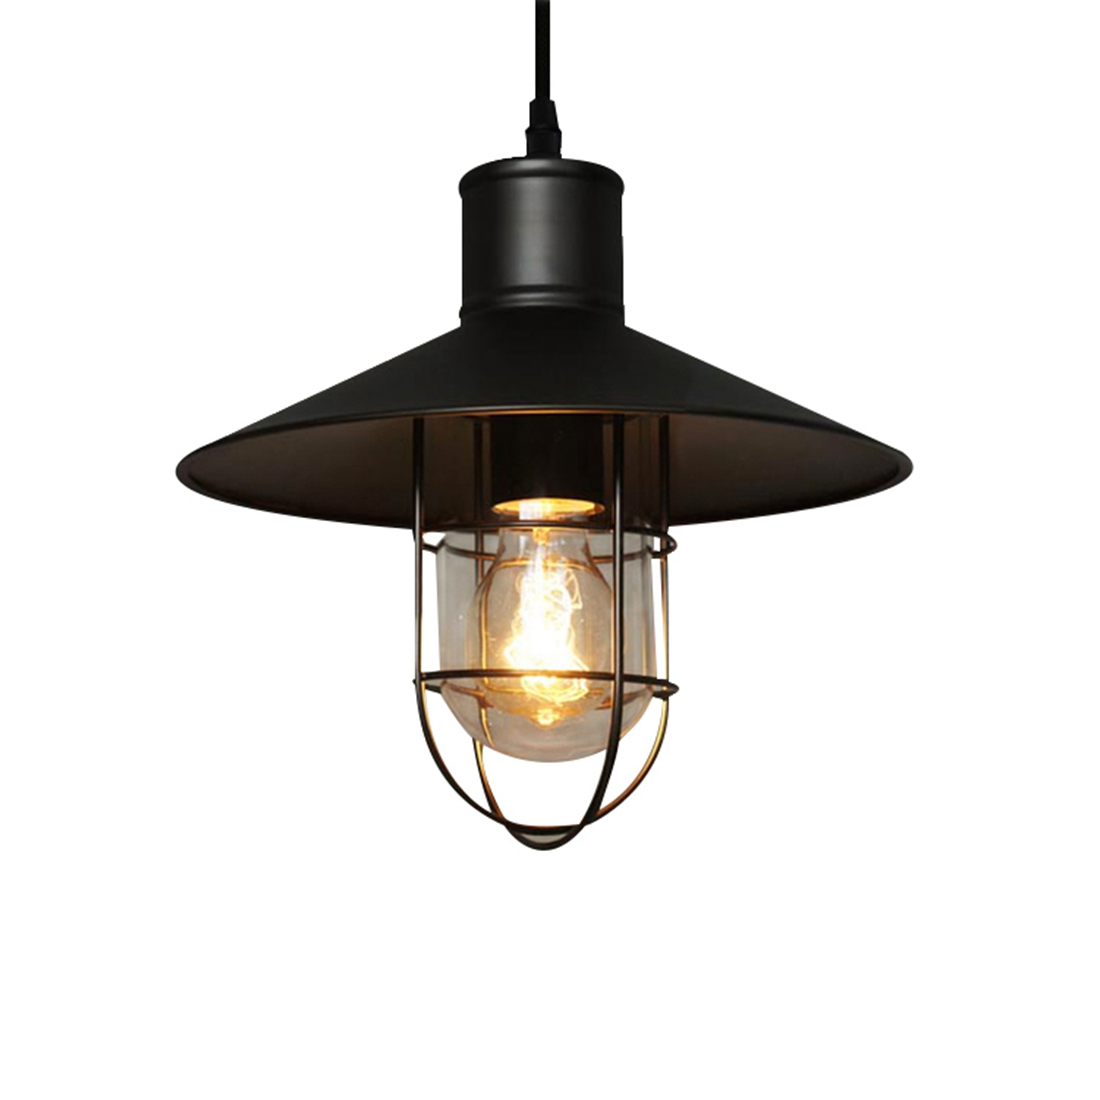 Creative Vintage Iron Industry Bar Light Birdcage Chandelier Small Metal Lampshade Bar Coffee Shop ChandelierCreative Vintage Iron Industry Bar Light Birdcage Chandelier Small Metal Lampshade Bar Coffee Shop Chandelier